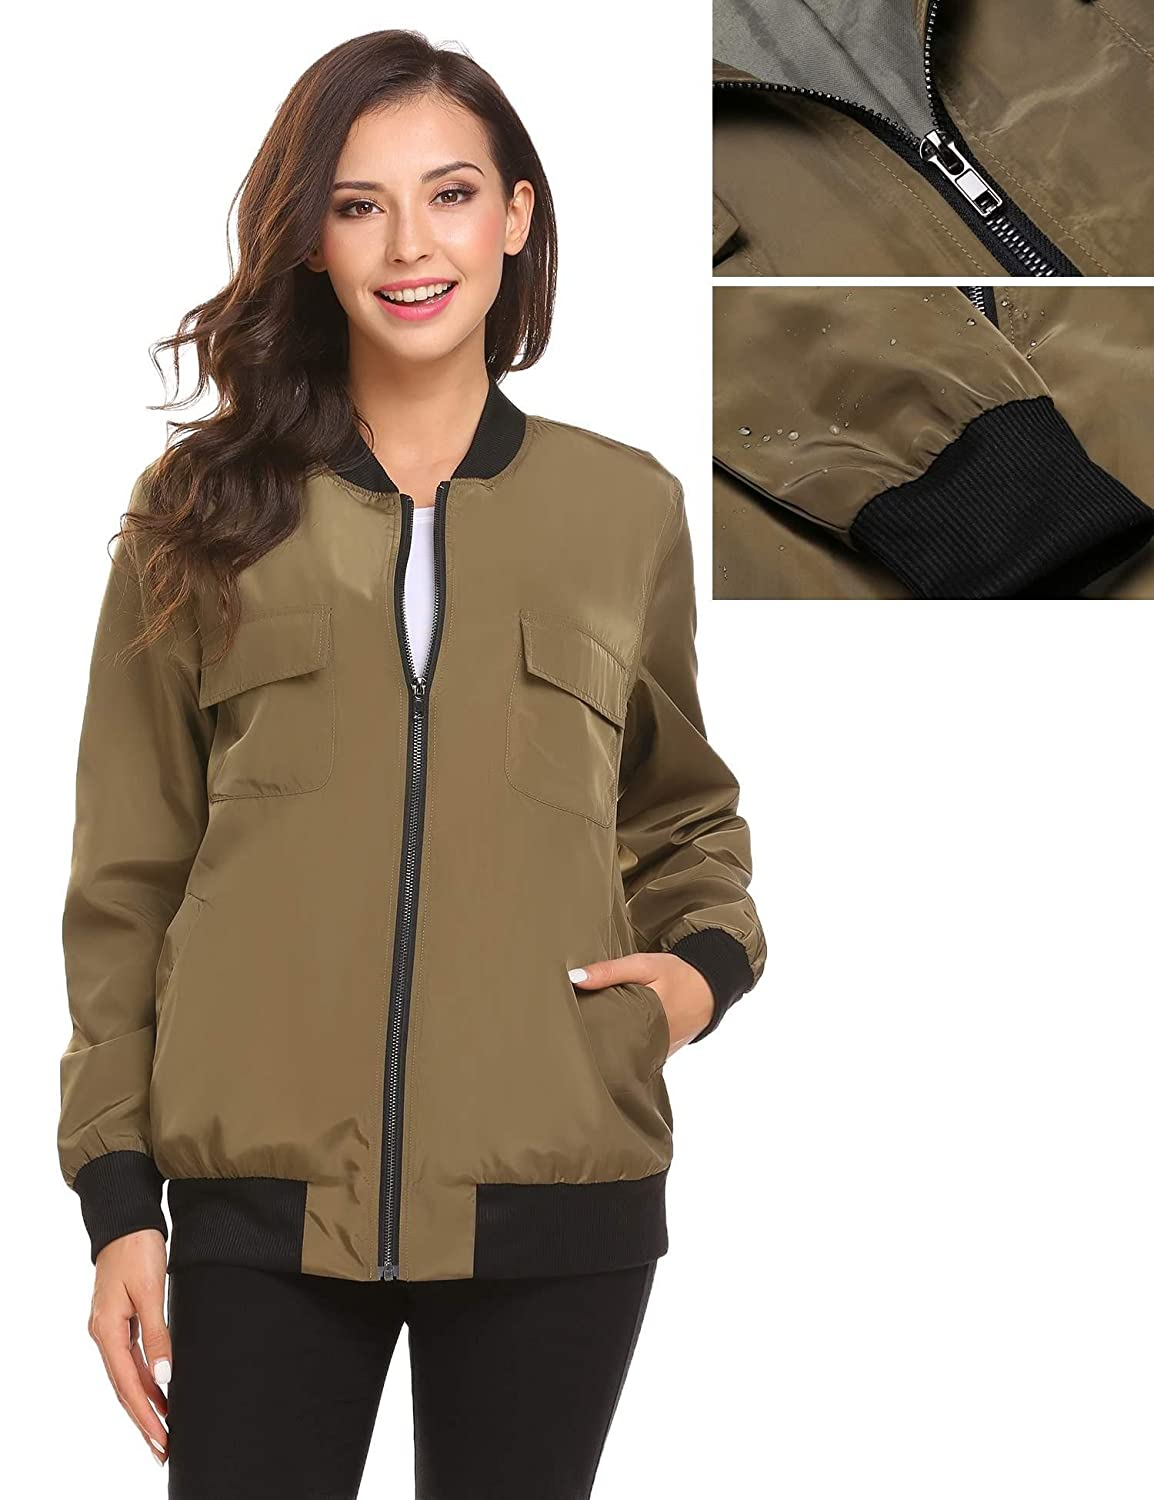 9052a804a Meaneor Womens Bomber Jacket Waterproof Classic Quilted Jacket Short Coat  Plus Size Embroidered Floral Phenix Jacket